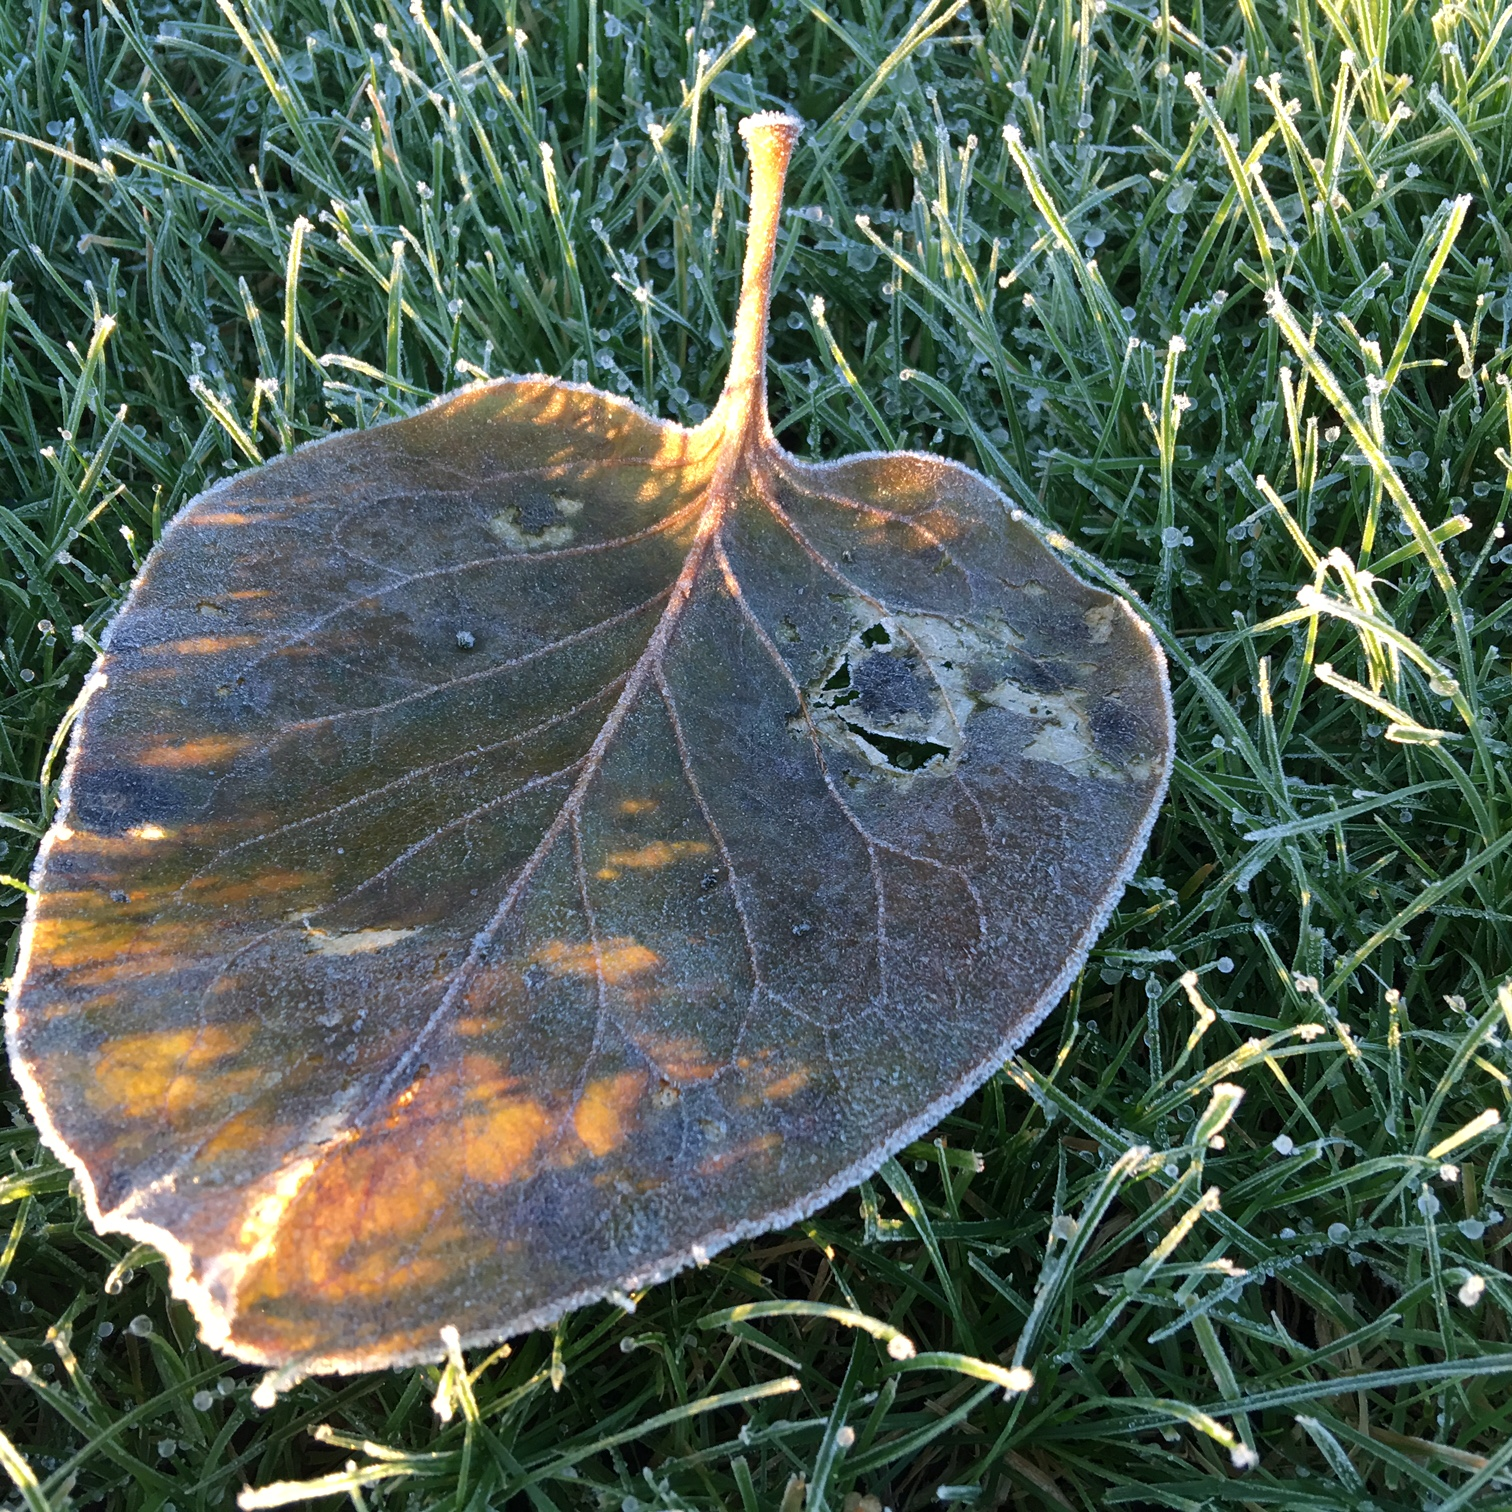 Autumn Leaf in the morning sun